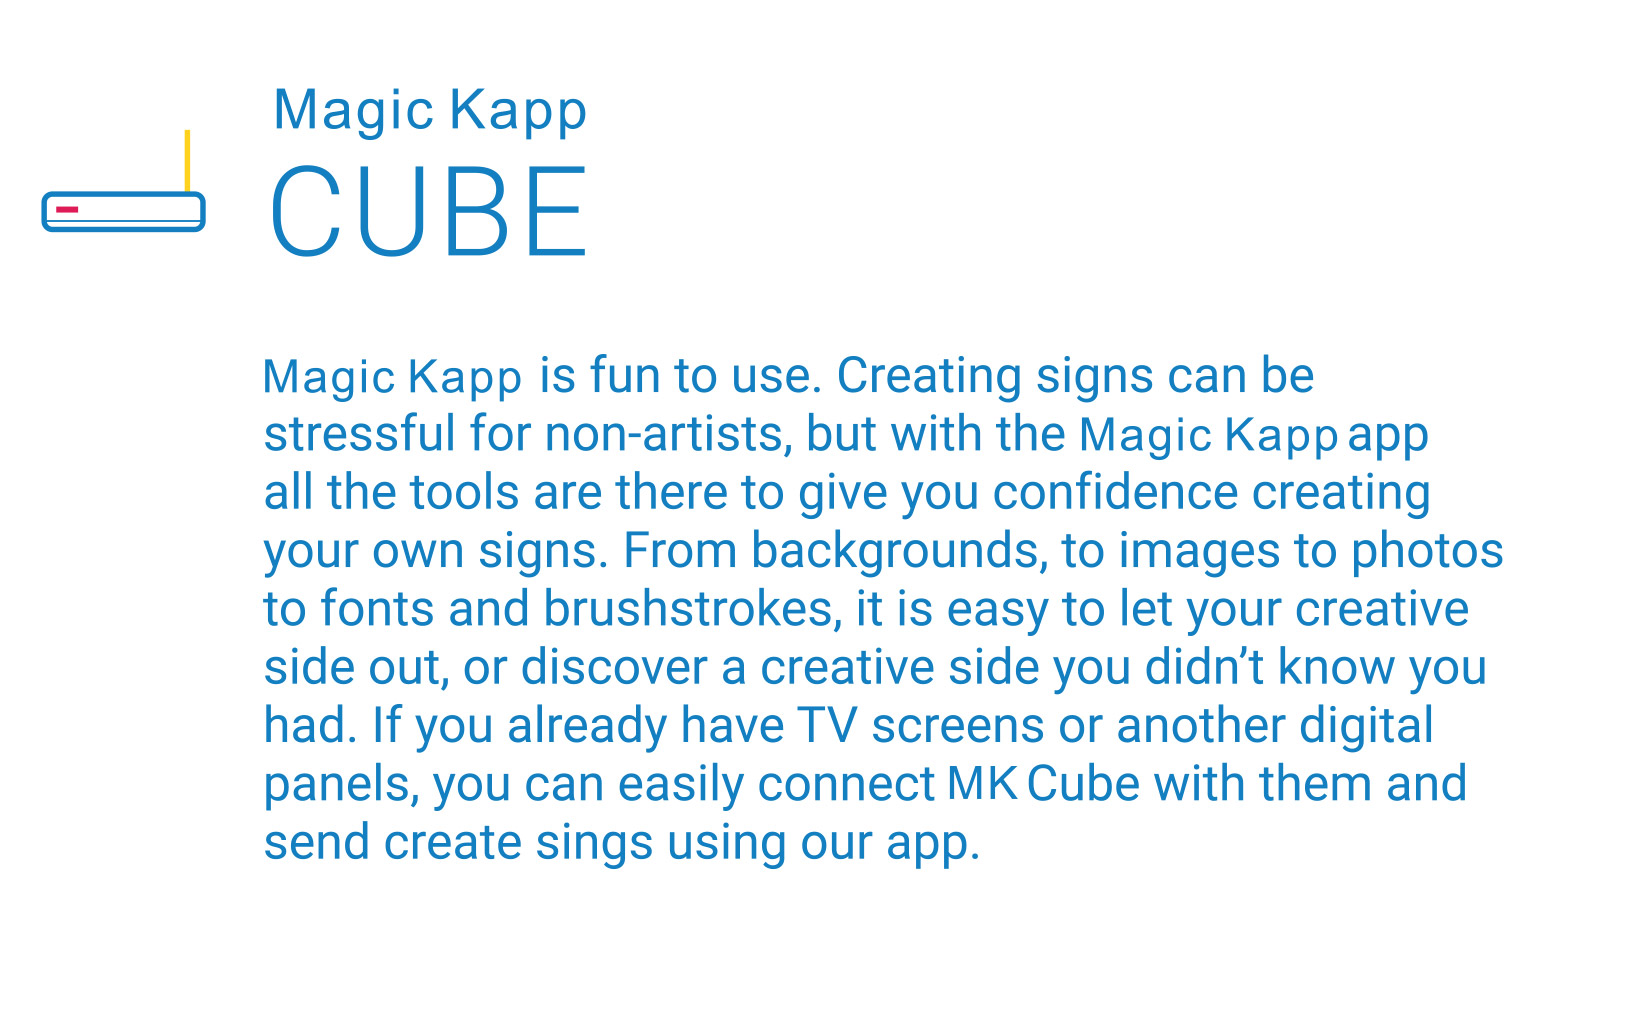 MAGIC-KAPP